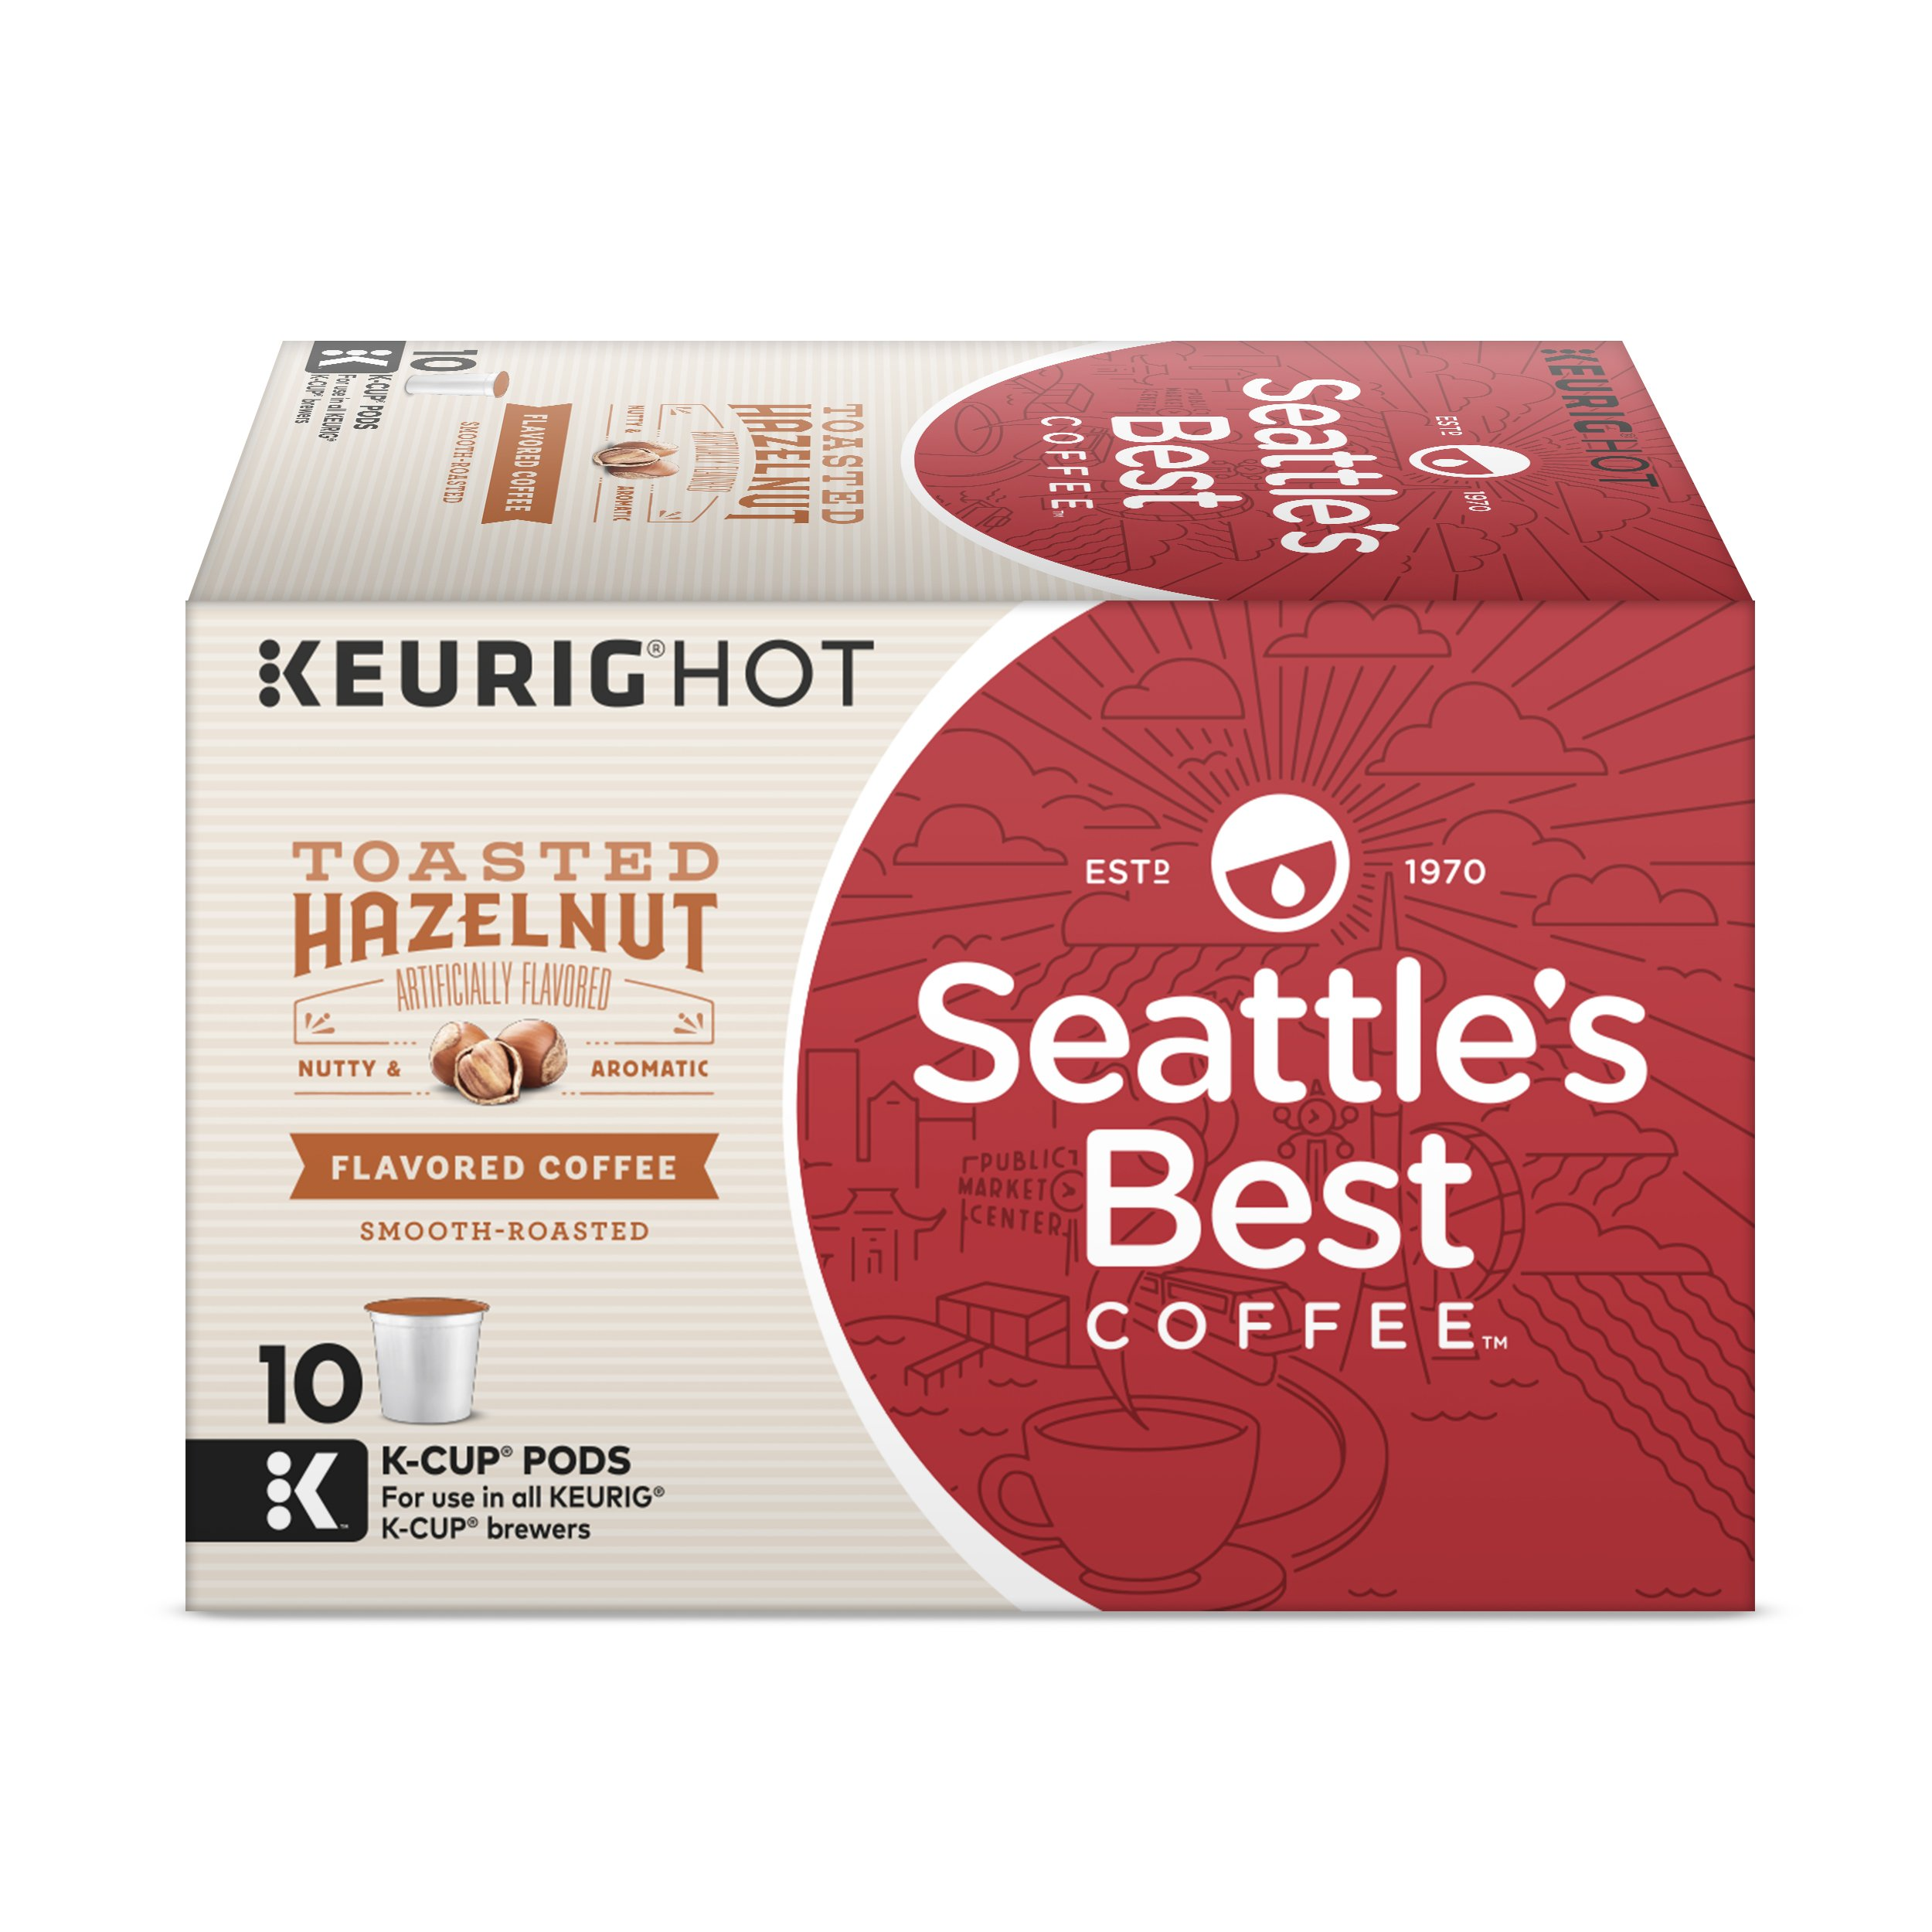 Seattle's Best Coffee Toasted Hazelnut Flavored Medium Roast Single Cup Coffee for Keurig Brewers, 6 boxes of 10 (60 Total K-Cup pods)